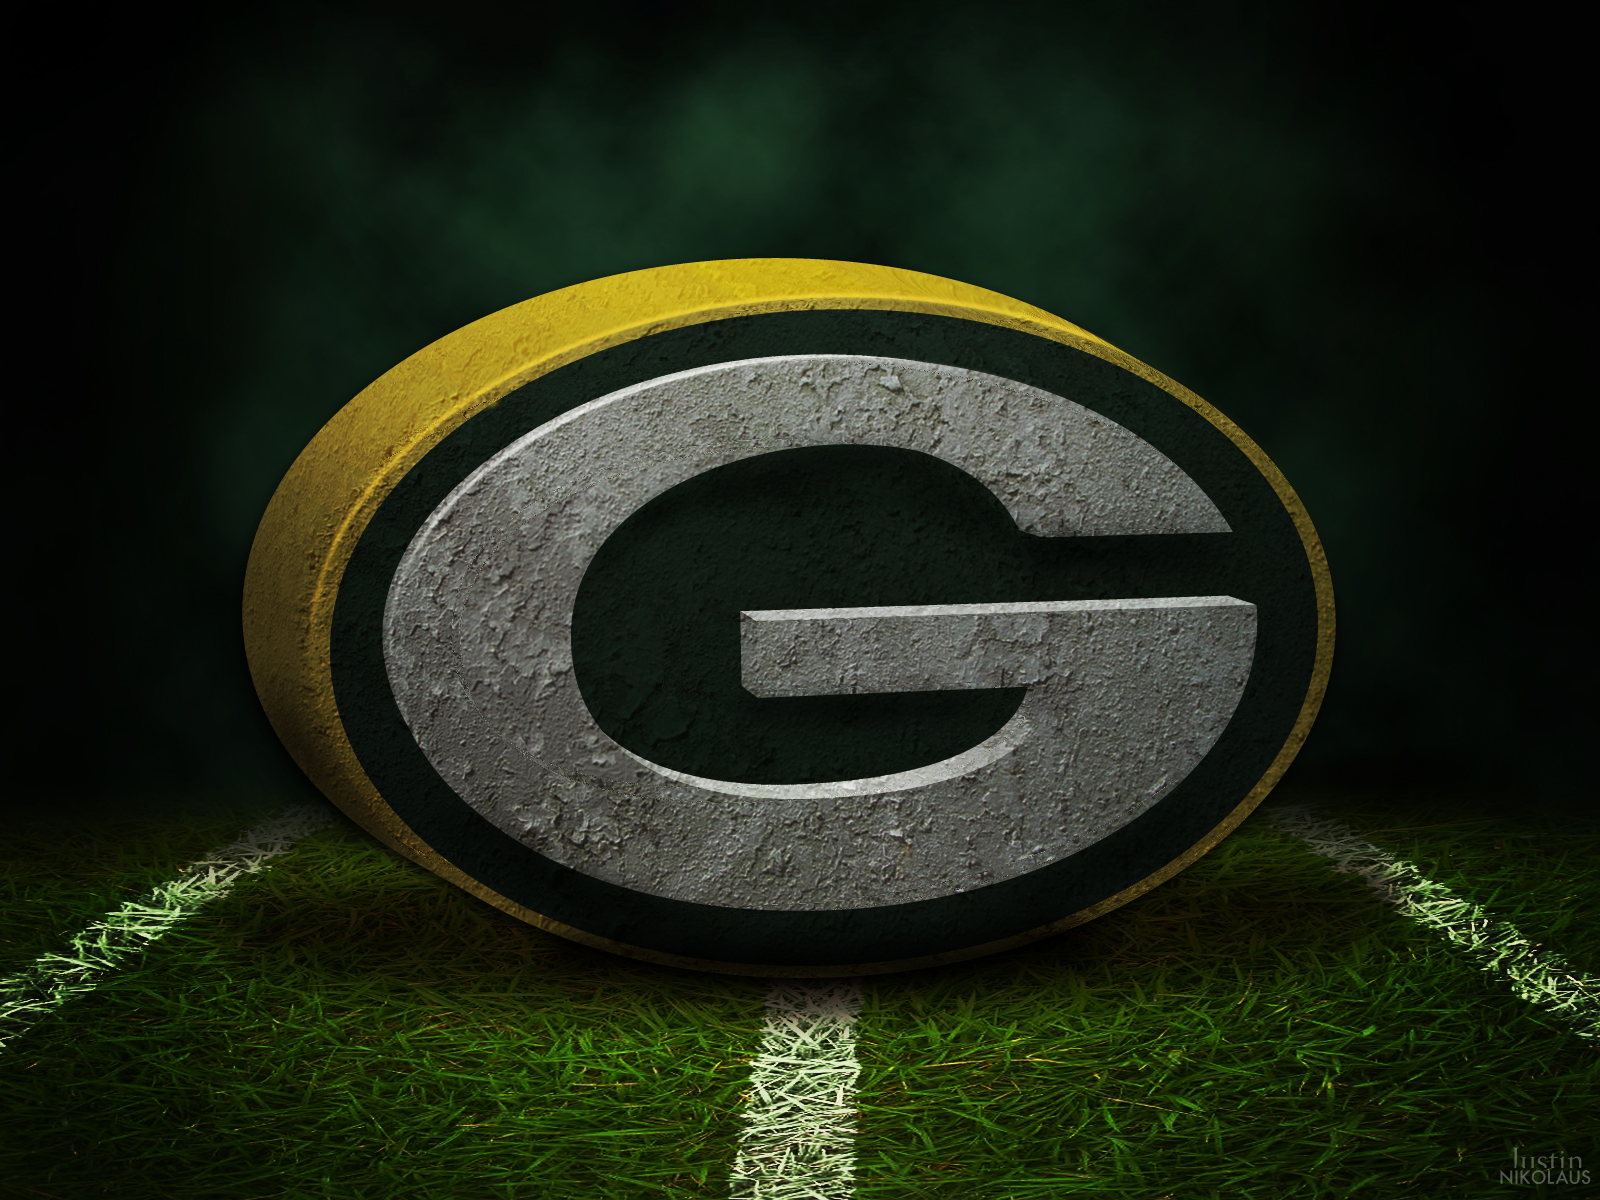 The Green Bay Packers are a professional American football team based in Green Bay Wisconsin The Packers compete in the National Football League NFL as a member